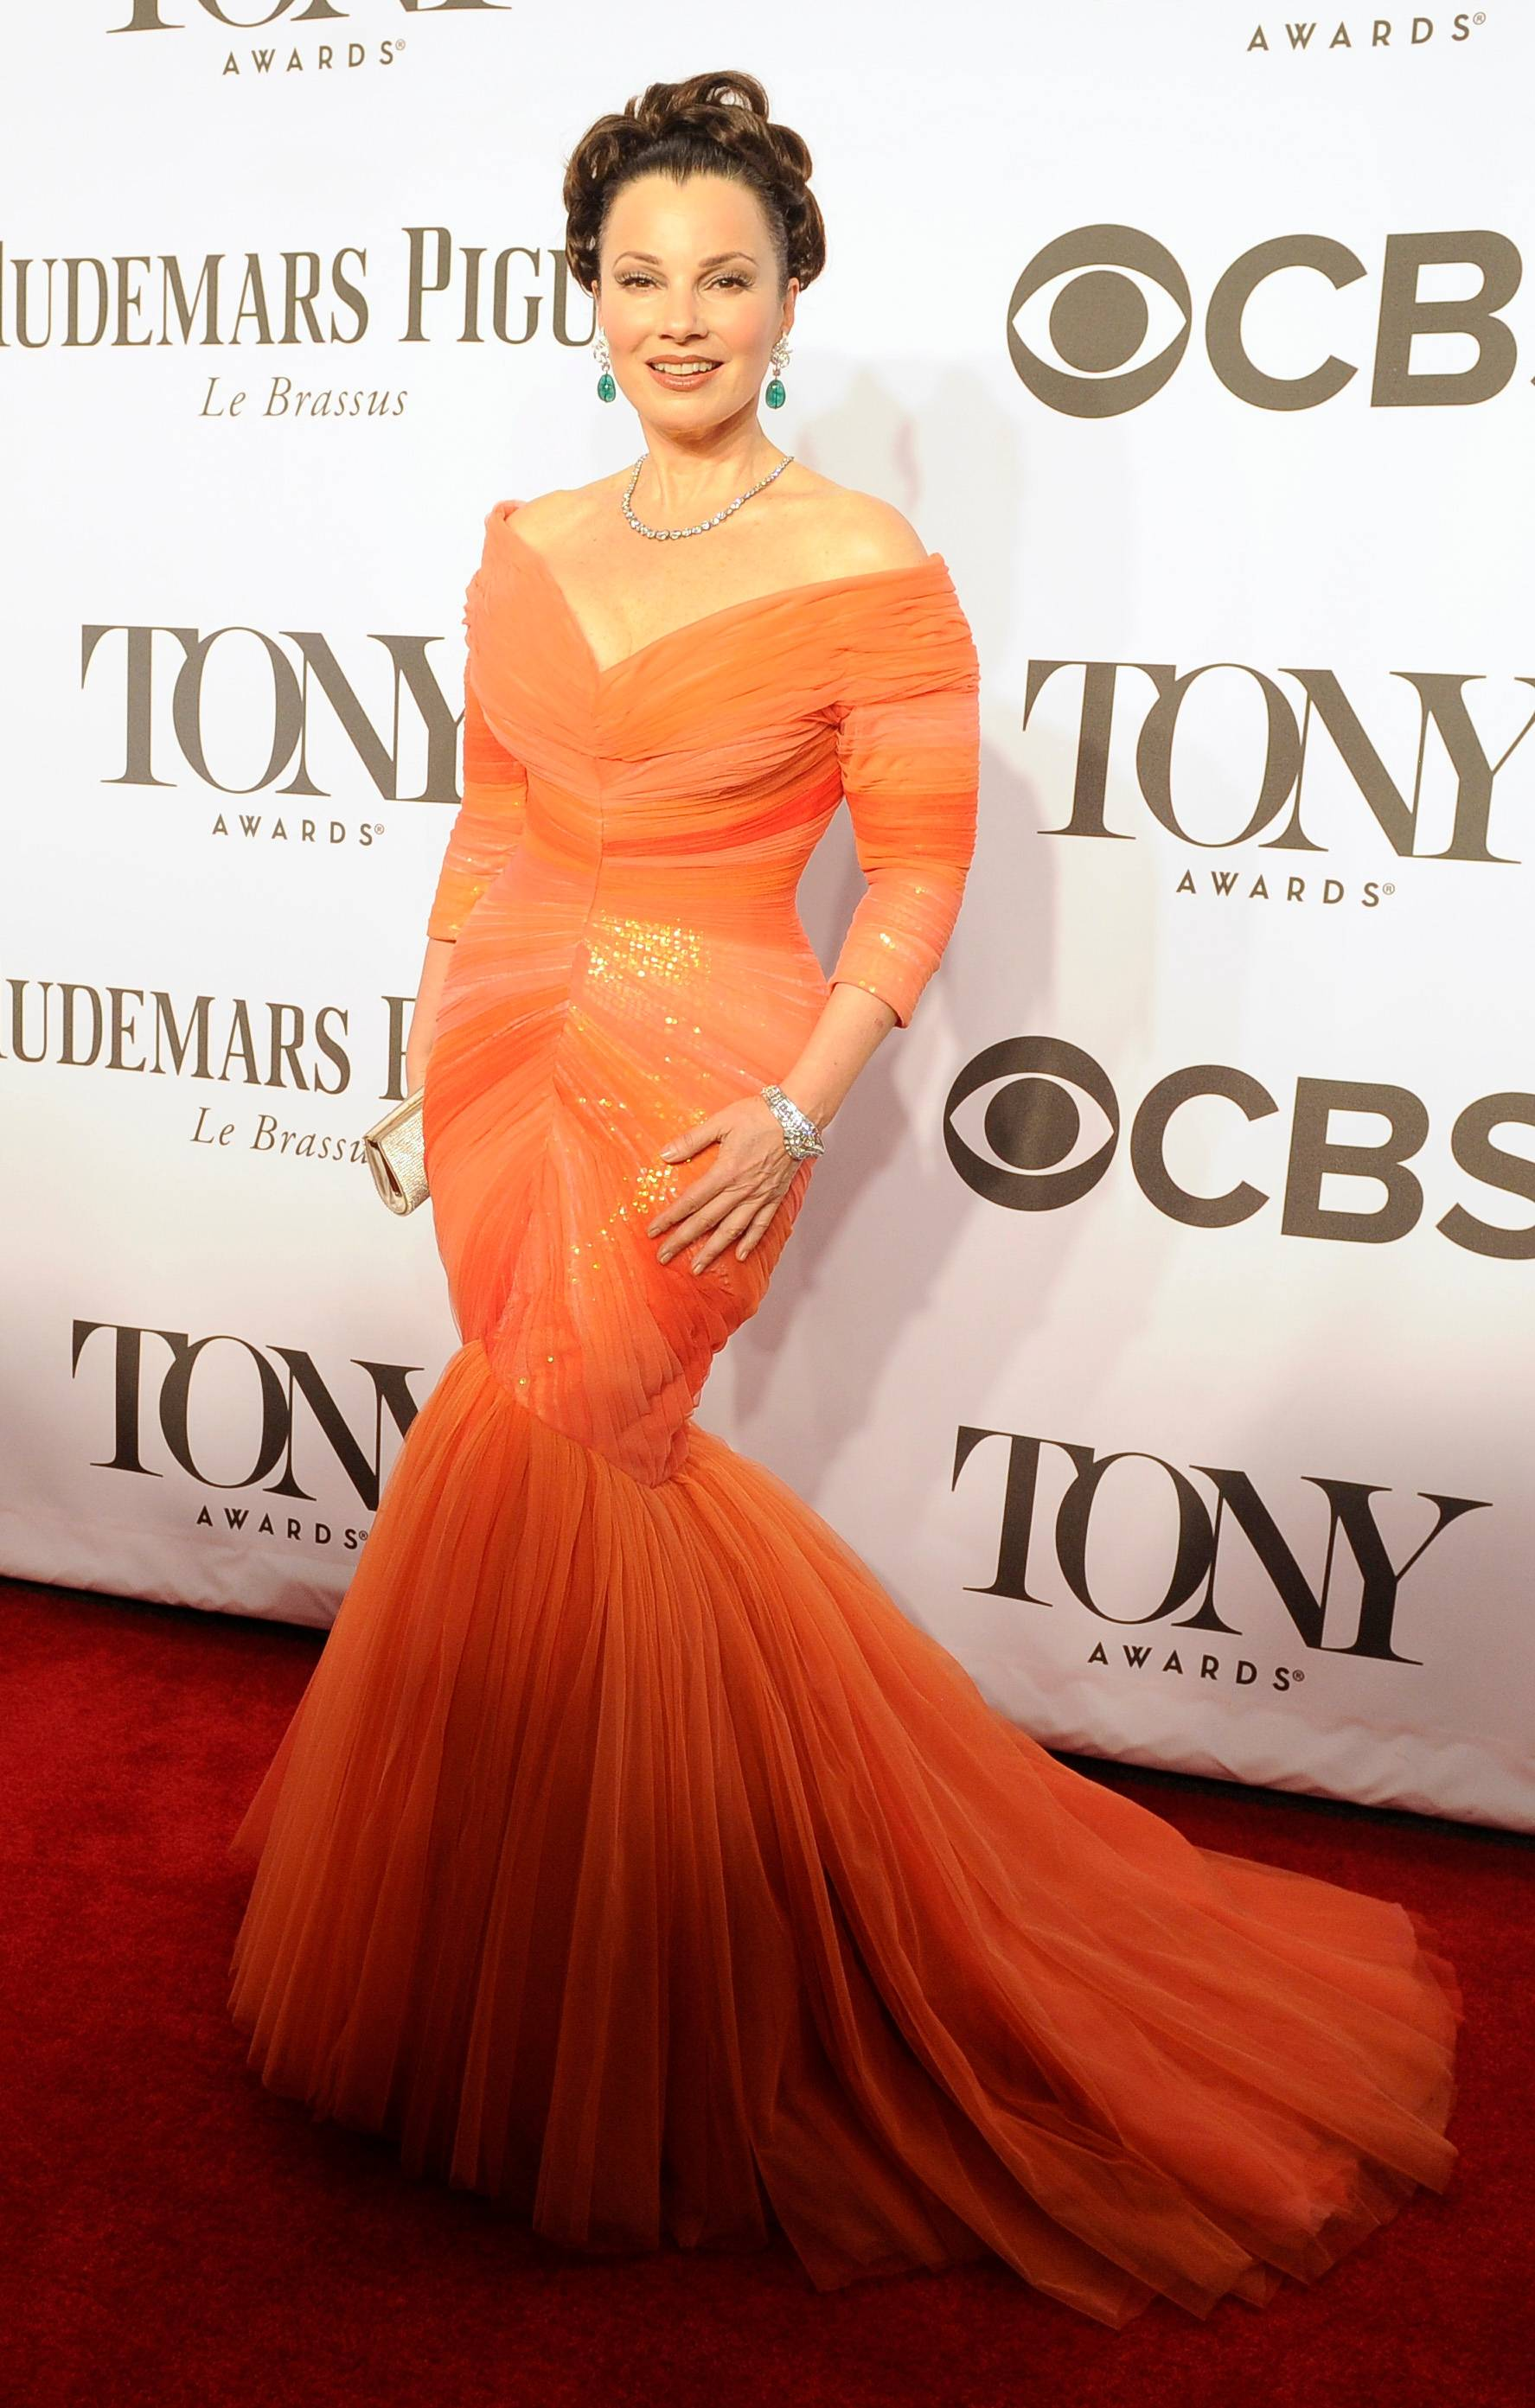 """Rodgers and Hammerstein's Cinderella"" star Fran Drescher arrives at the 68th annual Tony Awards at Radio City Music Hall on Sunday."